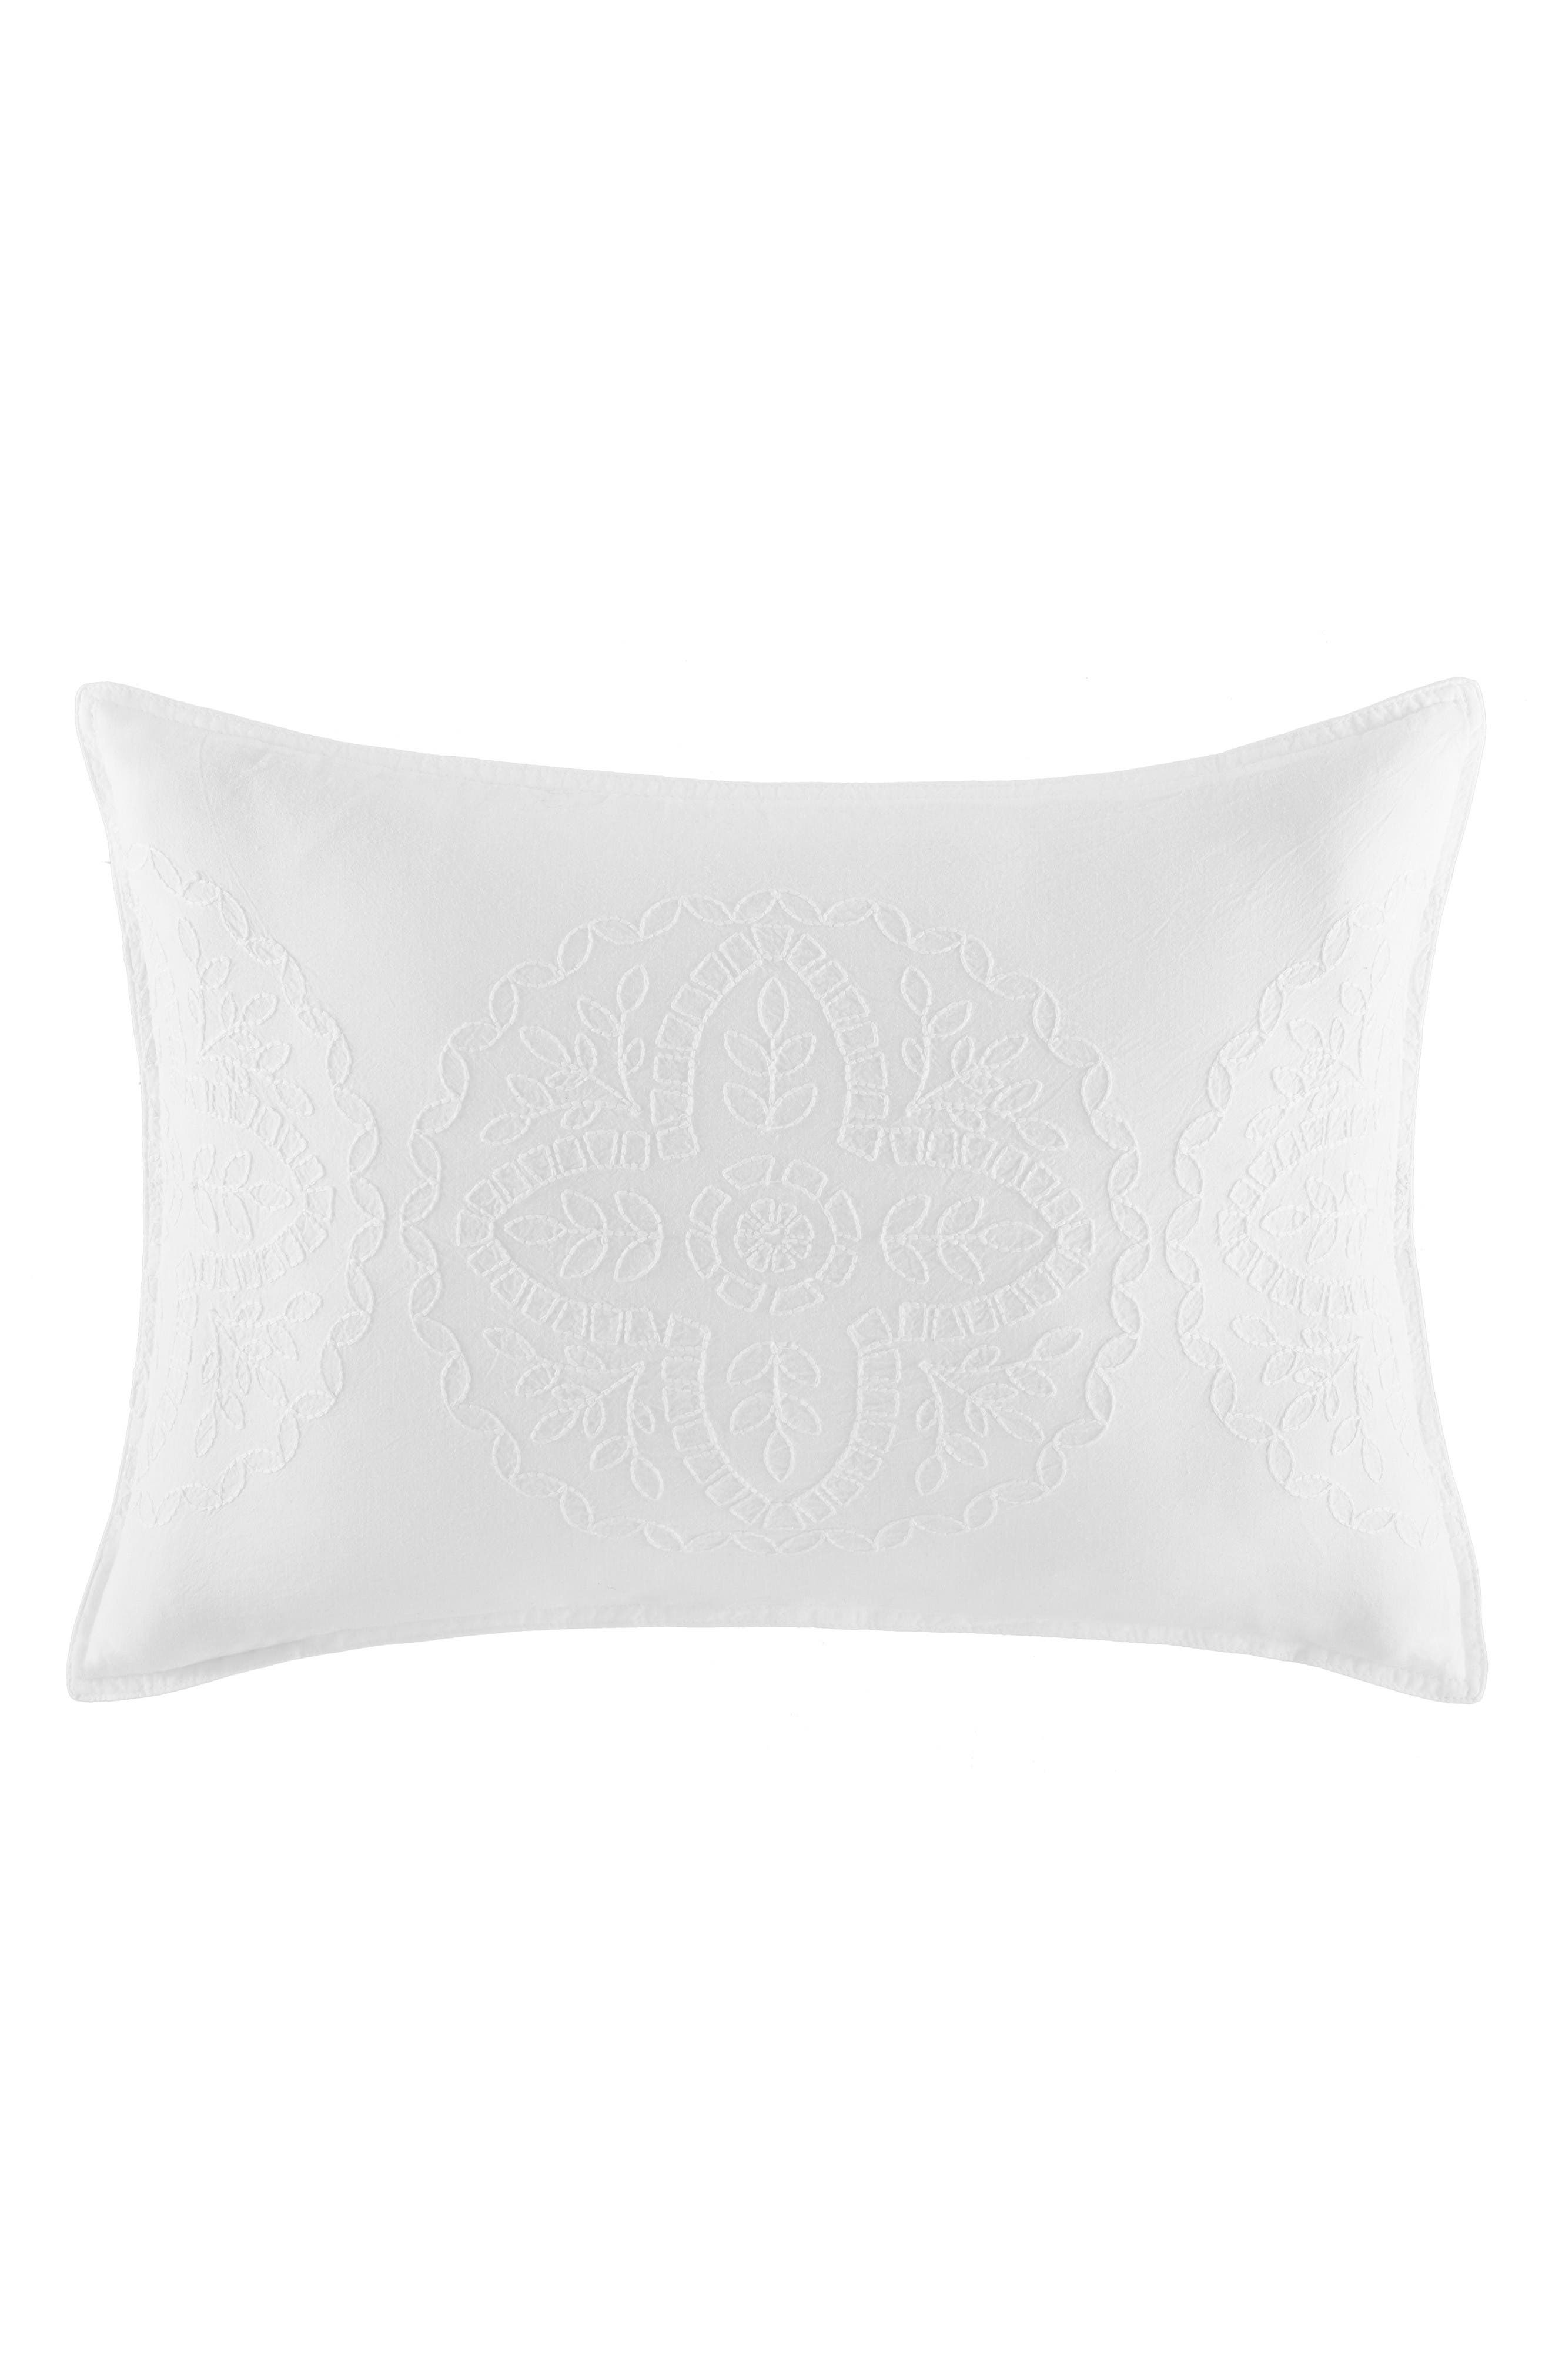 Tommy Hilfiger Floral Medallion Accent Pillow